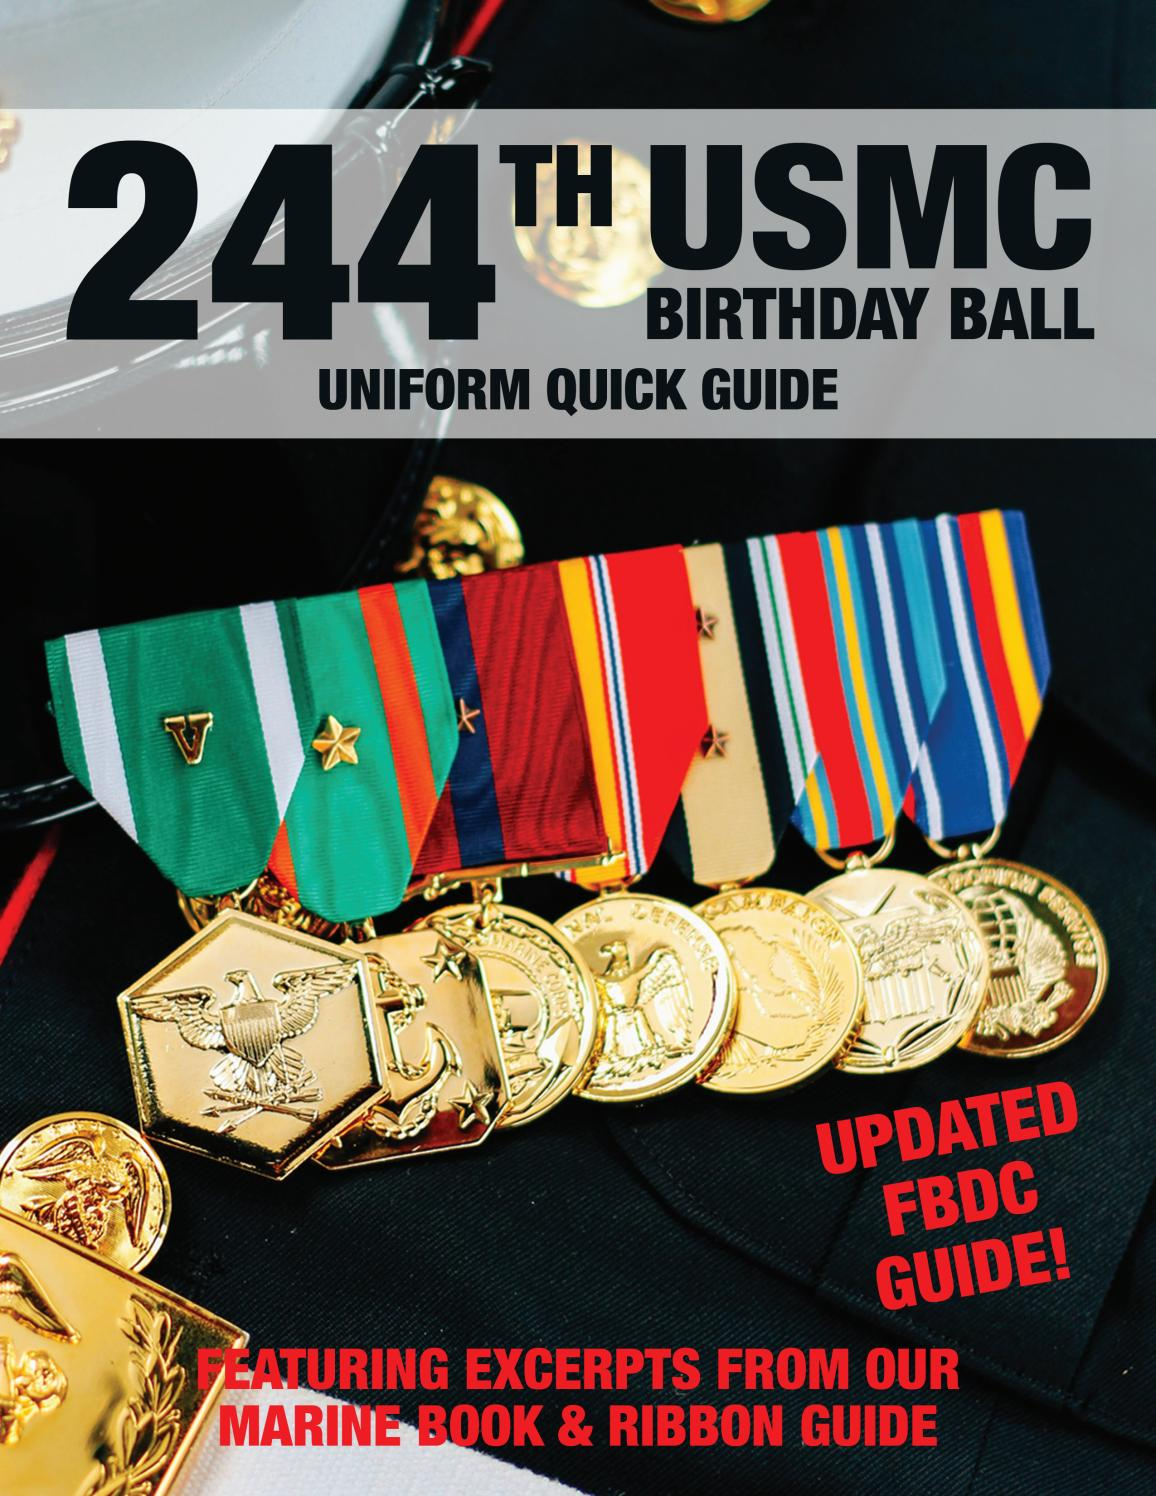 Medals Of America 244th Usmc Uniform Guide By Kirk Stotzer